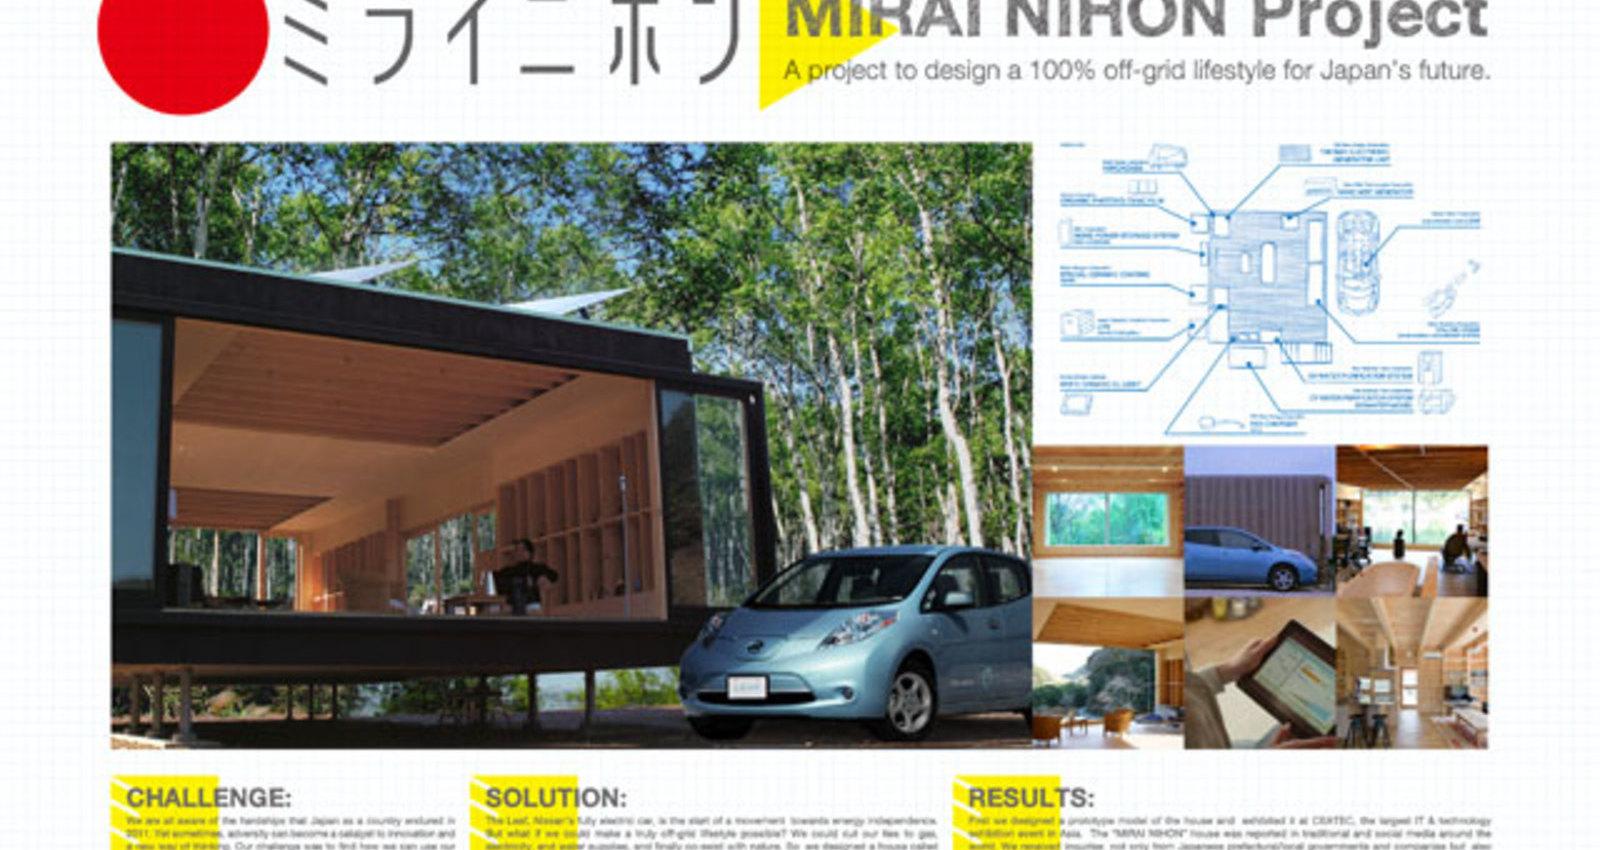 MIRAI NIHON PROJECT ('THE FUTURE OF JAPAN' PROJECT)